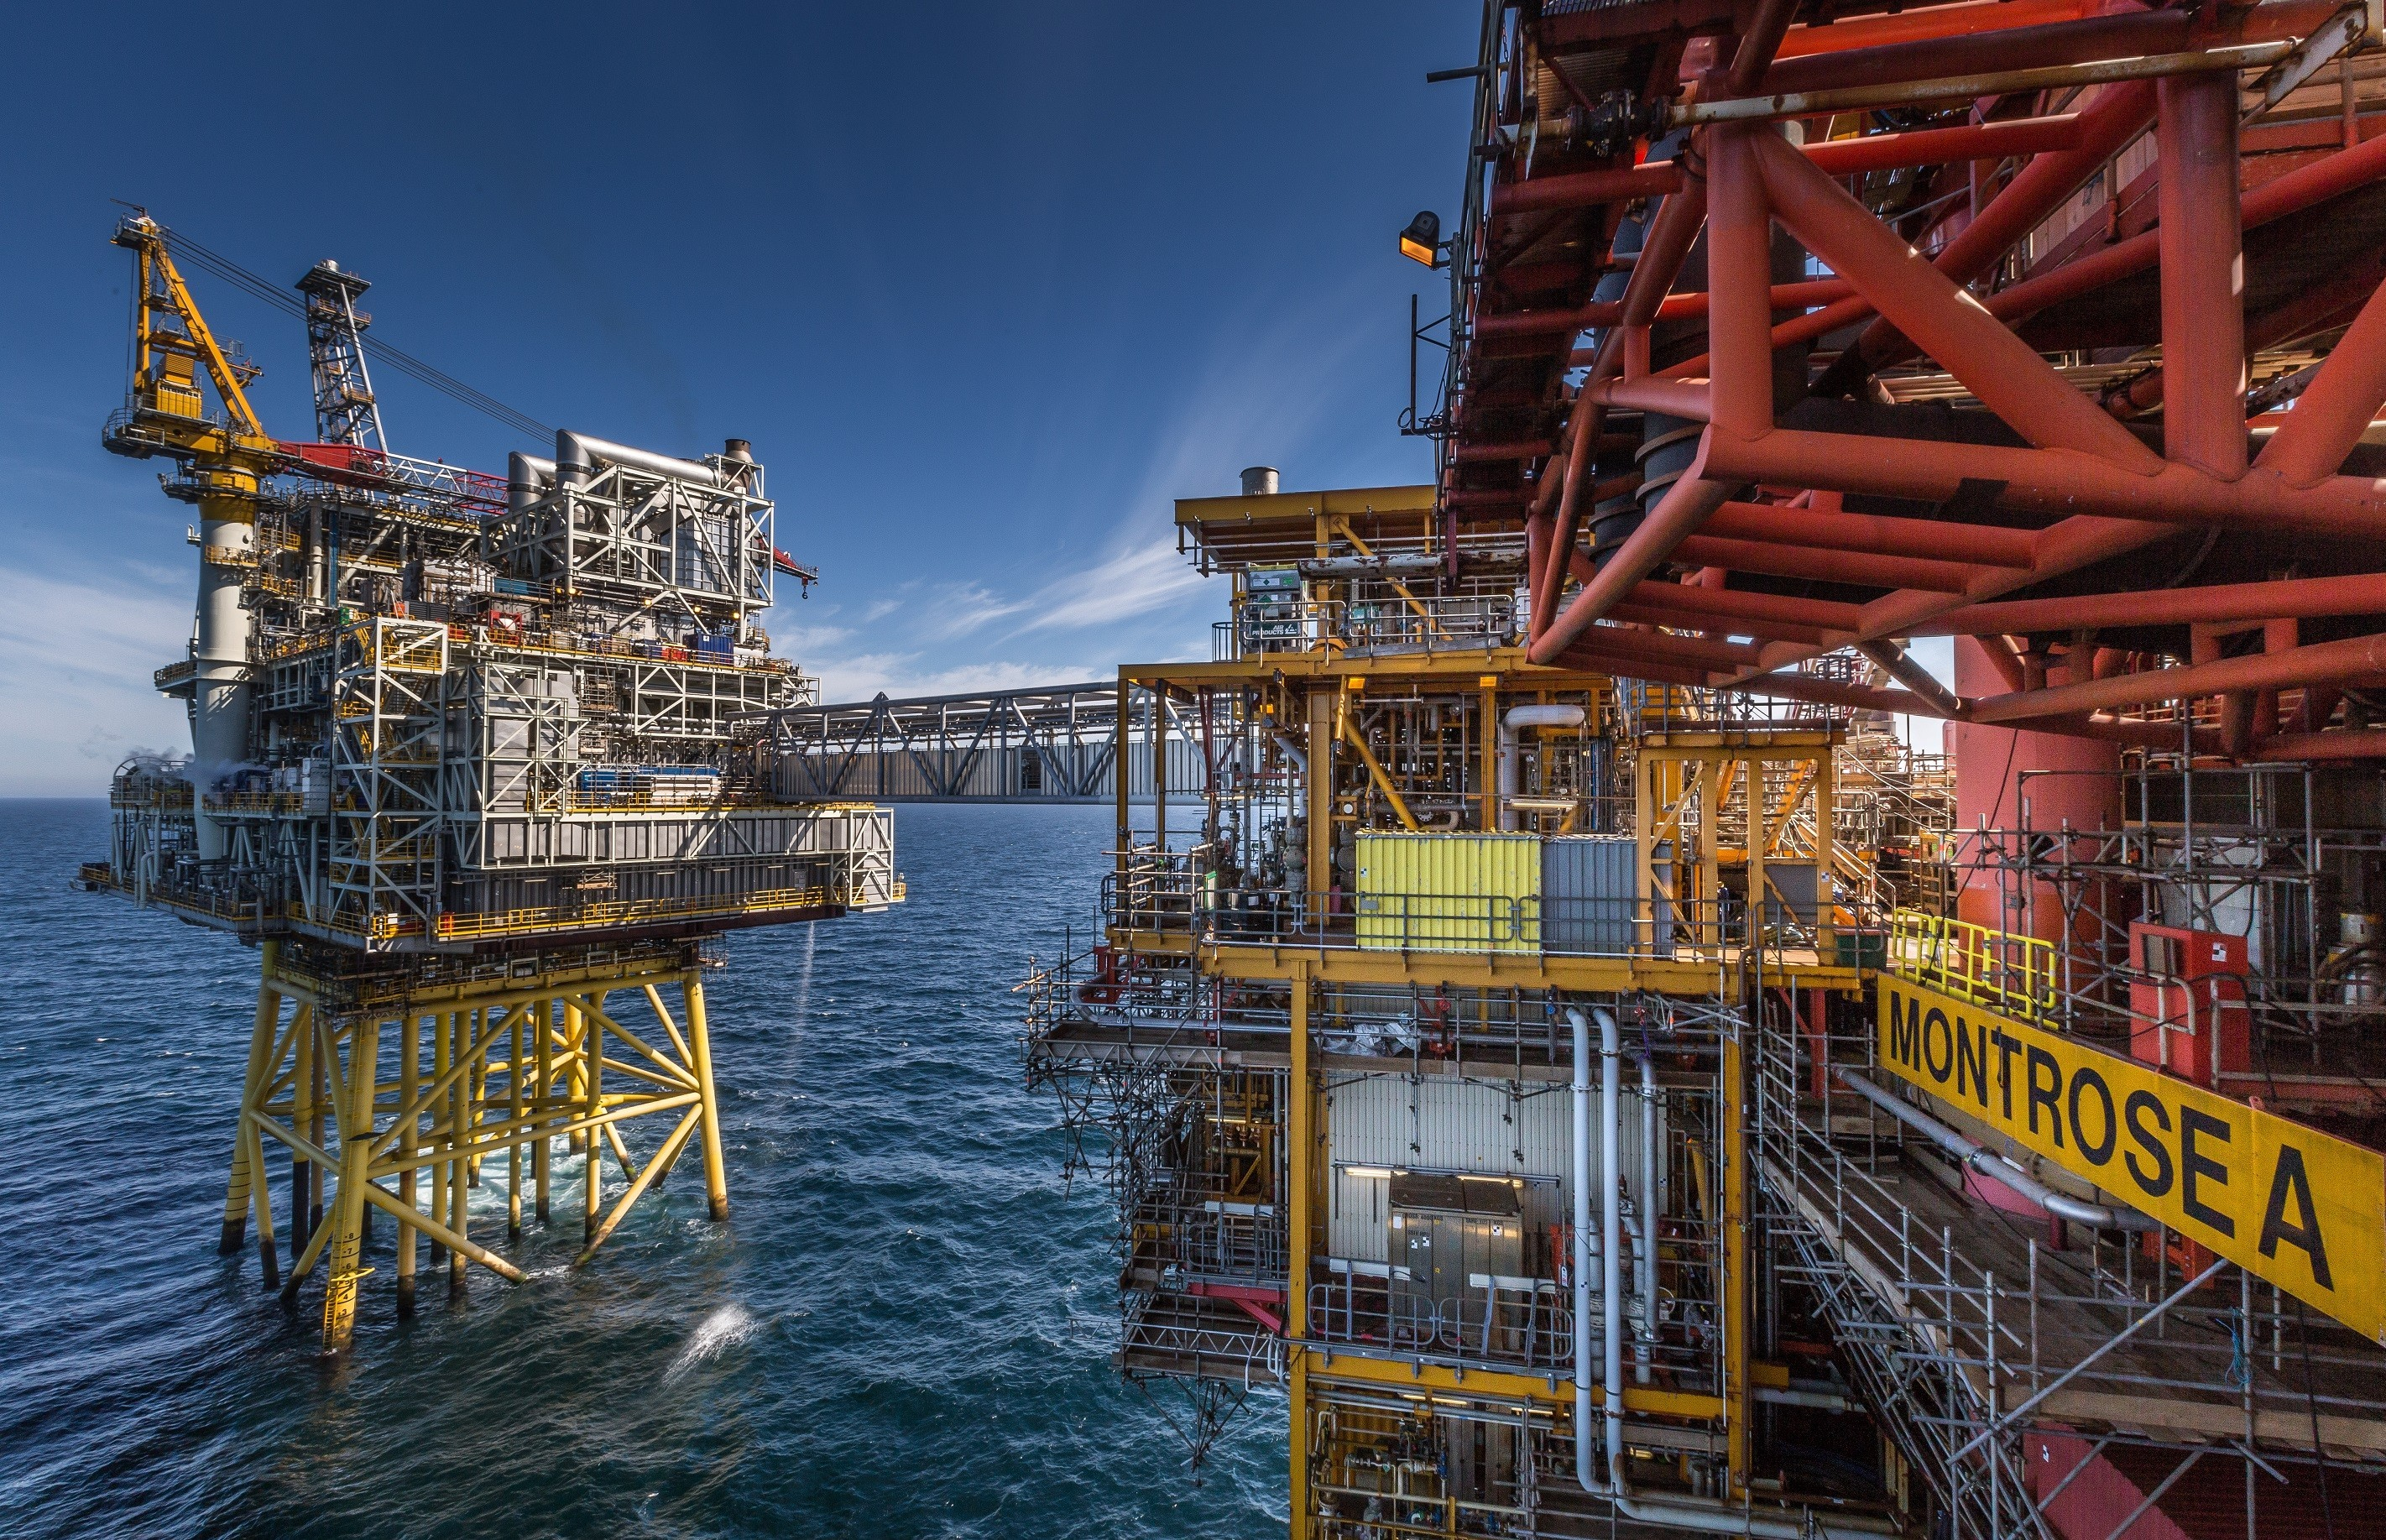 The Repsol Sinopec Resourses UK Montrose Alpha platform with the Montrose BLP located in the North Sea.